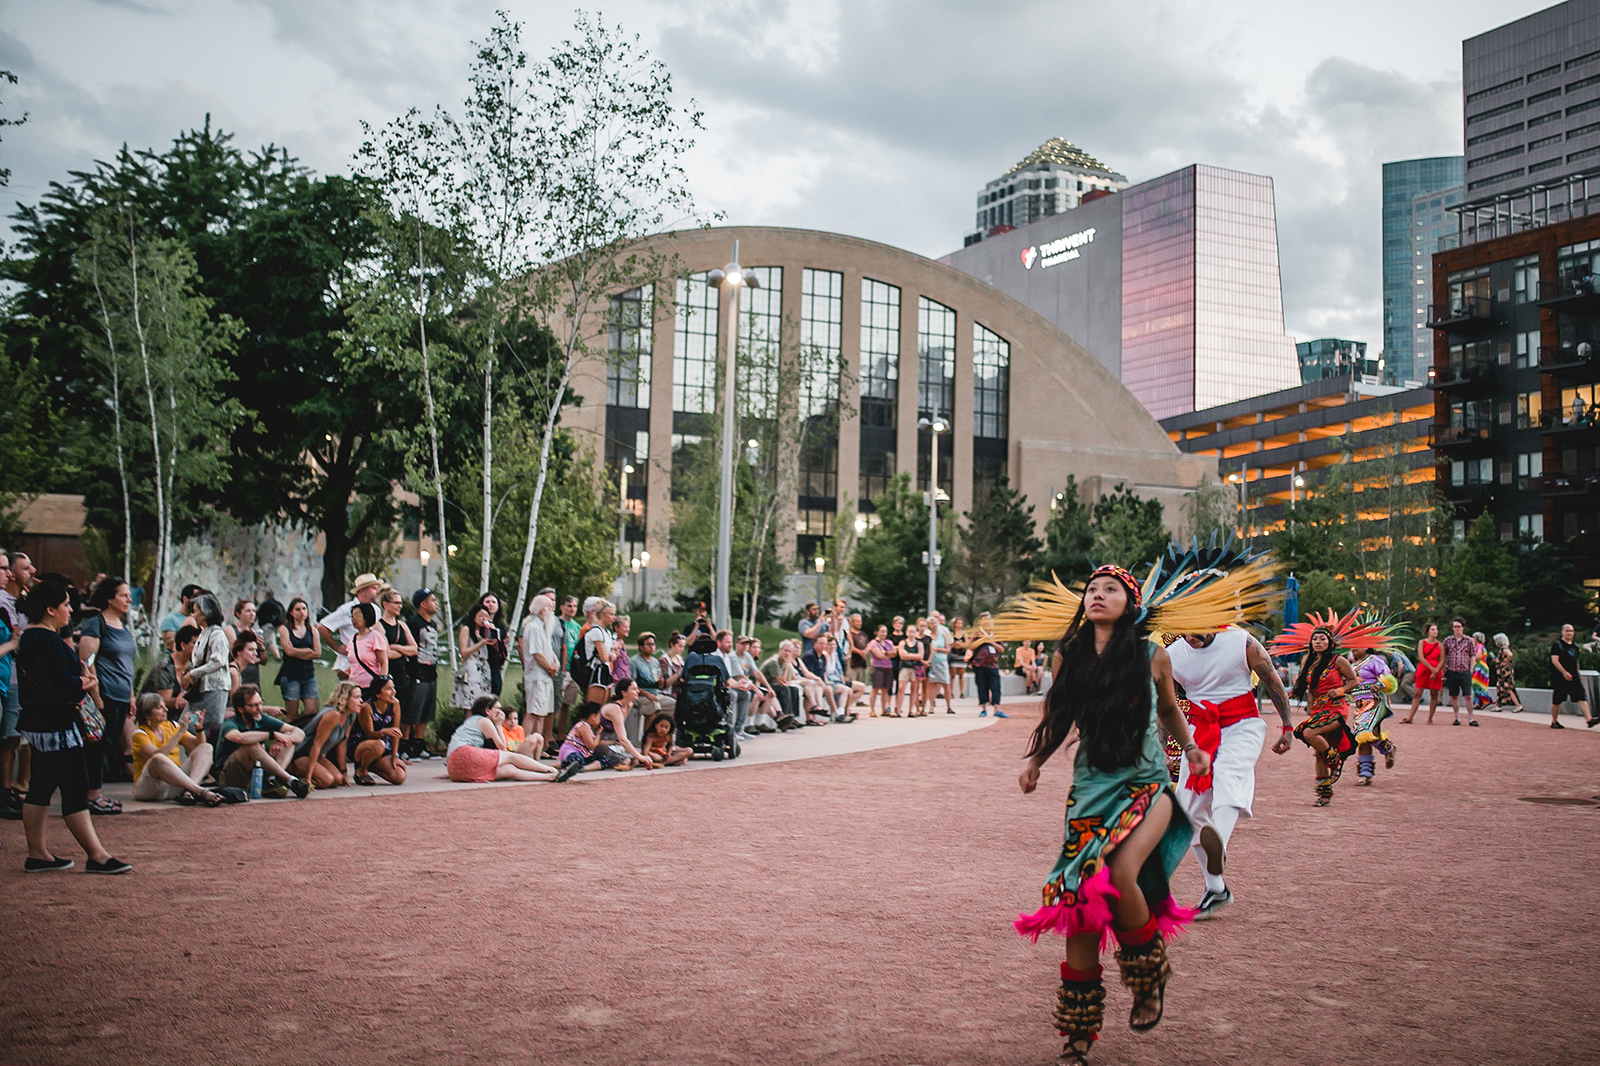 Native Dancers at the Commons